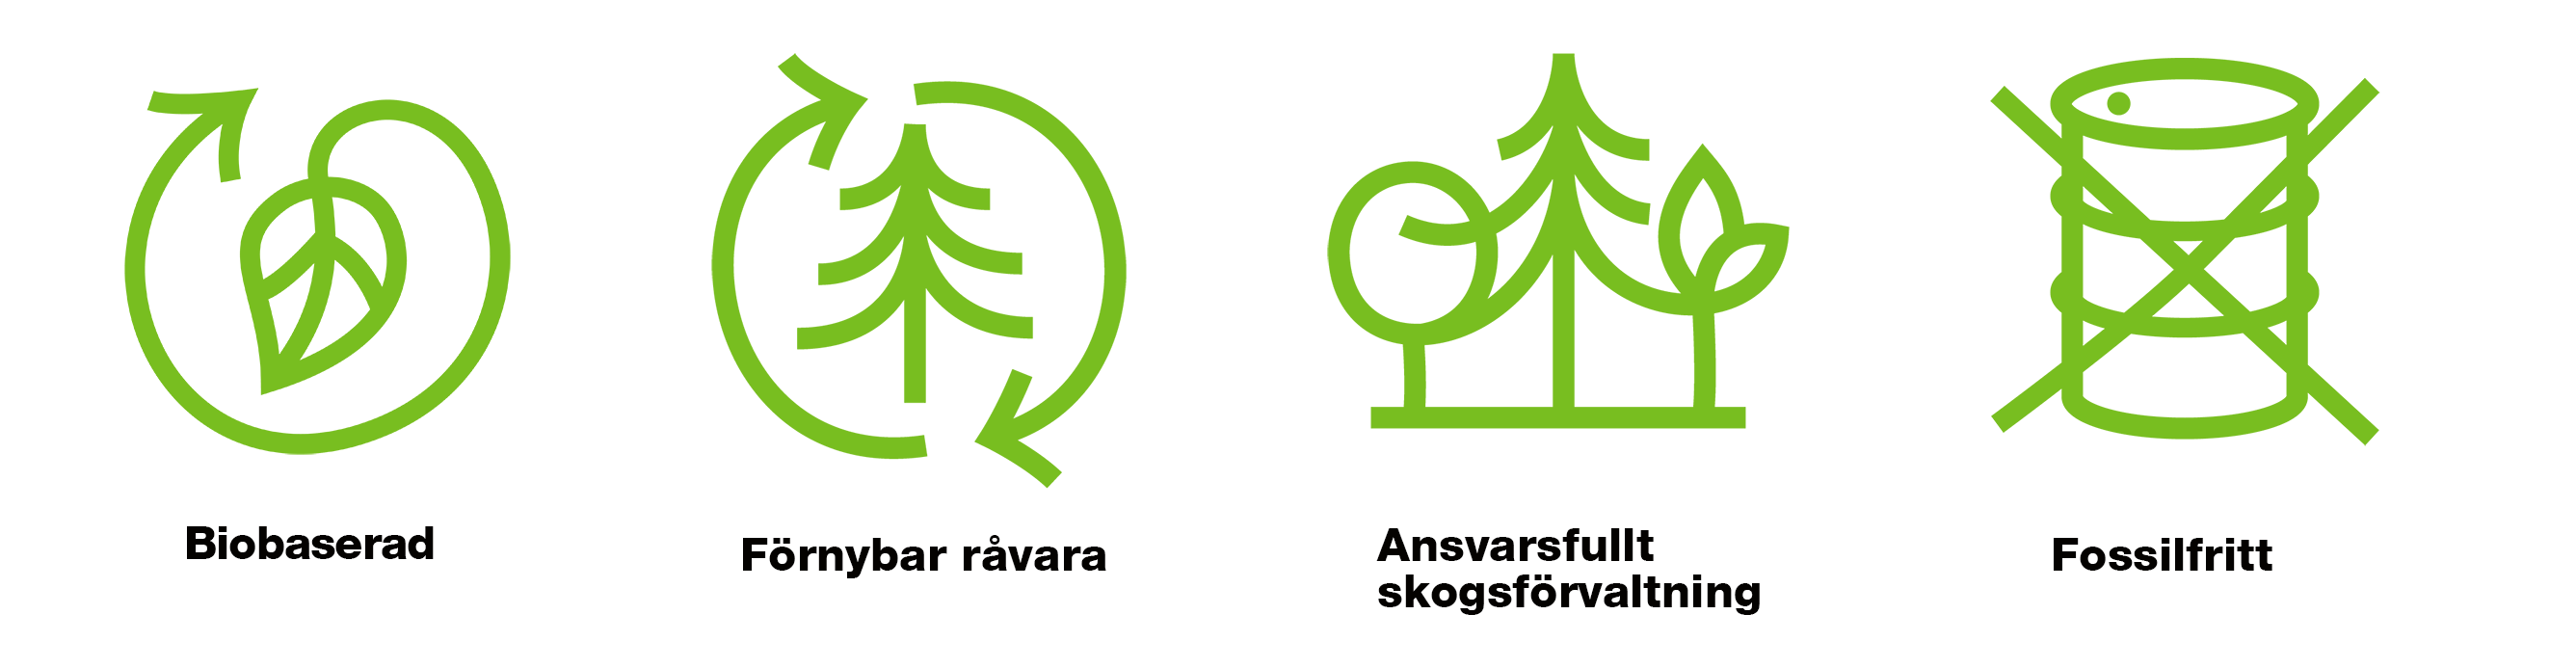 Neoligno eco-icons in Swedish